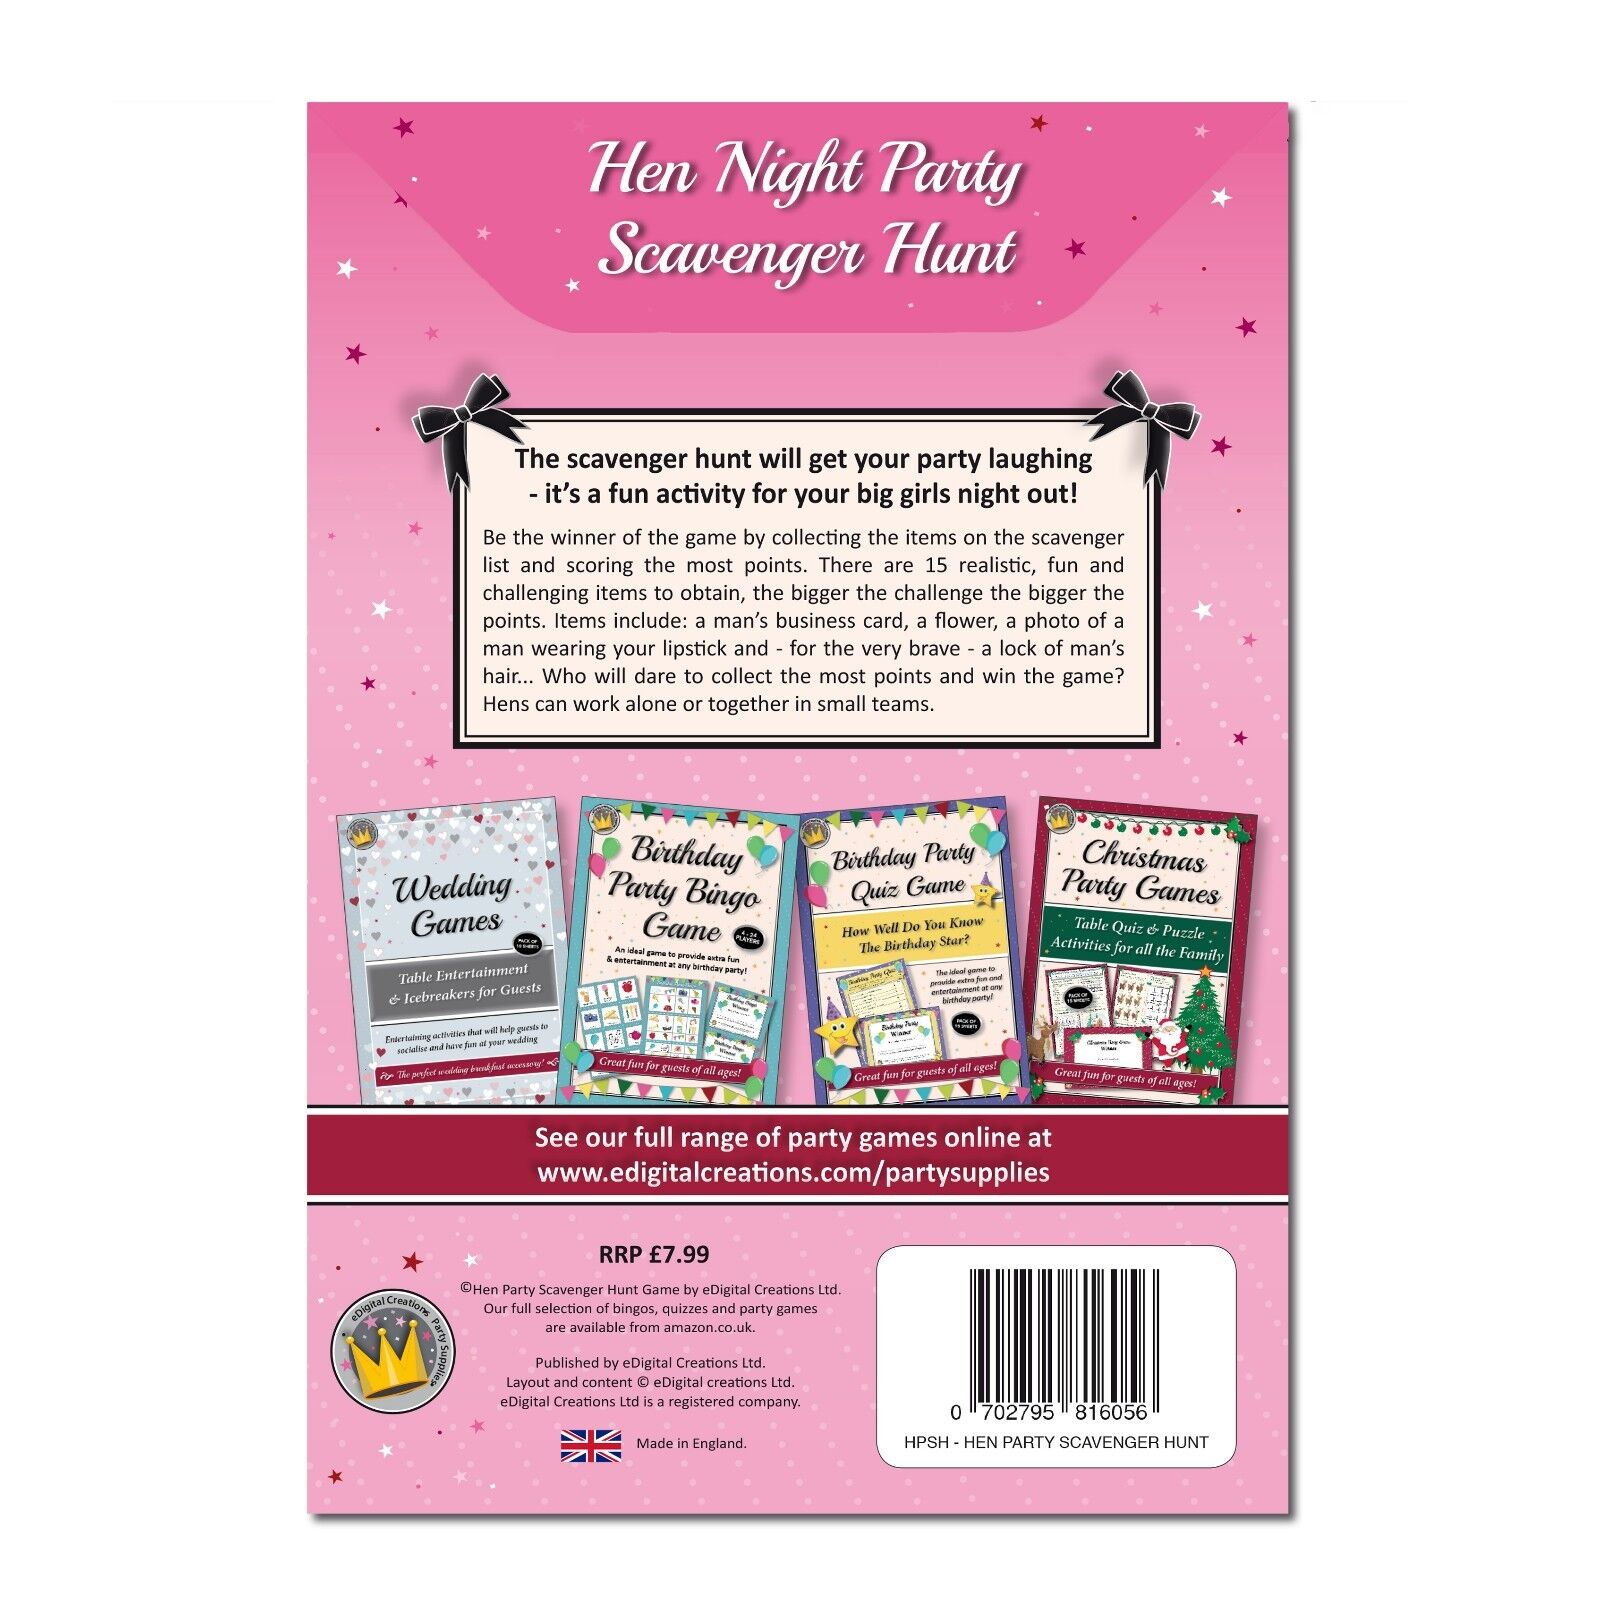 Astonishing Hen Night Party Games Fun Scavenger Hunt Game For Do Bridal Shower Or Girls Interior Design Ideas Apansoteloinfo